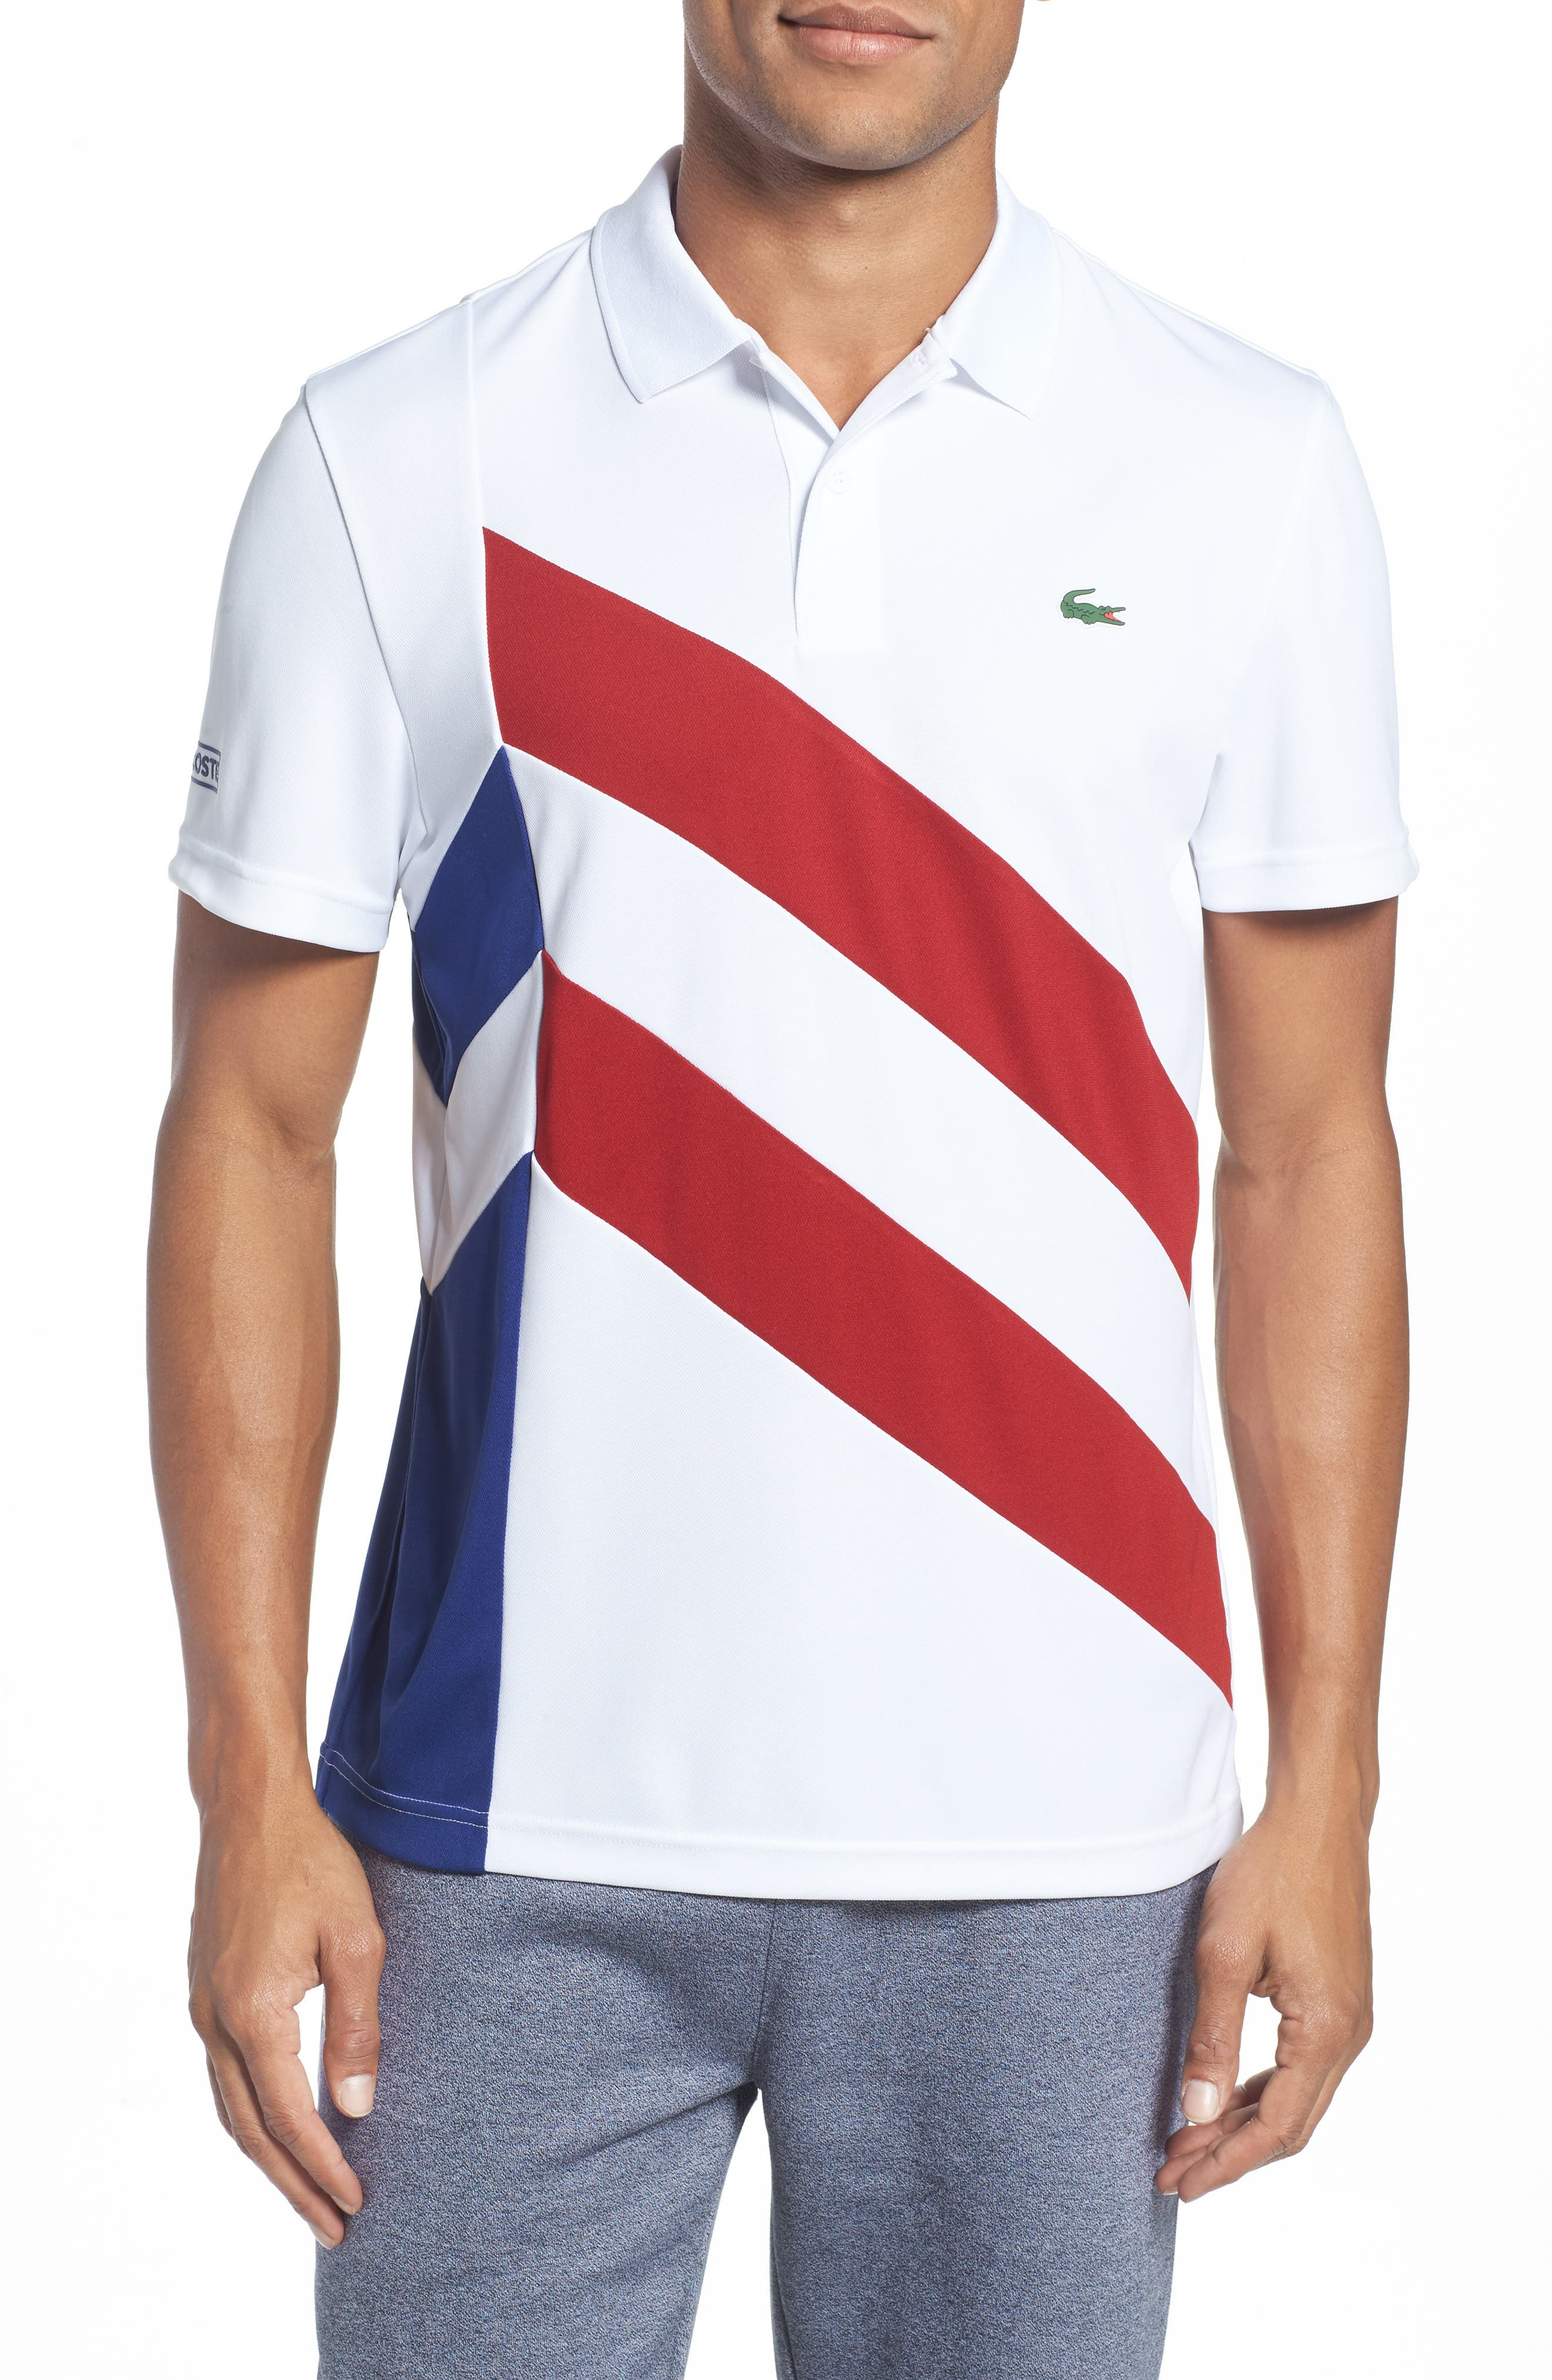 Alternate Image 1 Selected - Lacoste Asymmetrical Colorblocked Polo